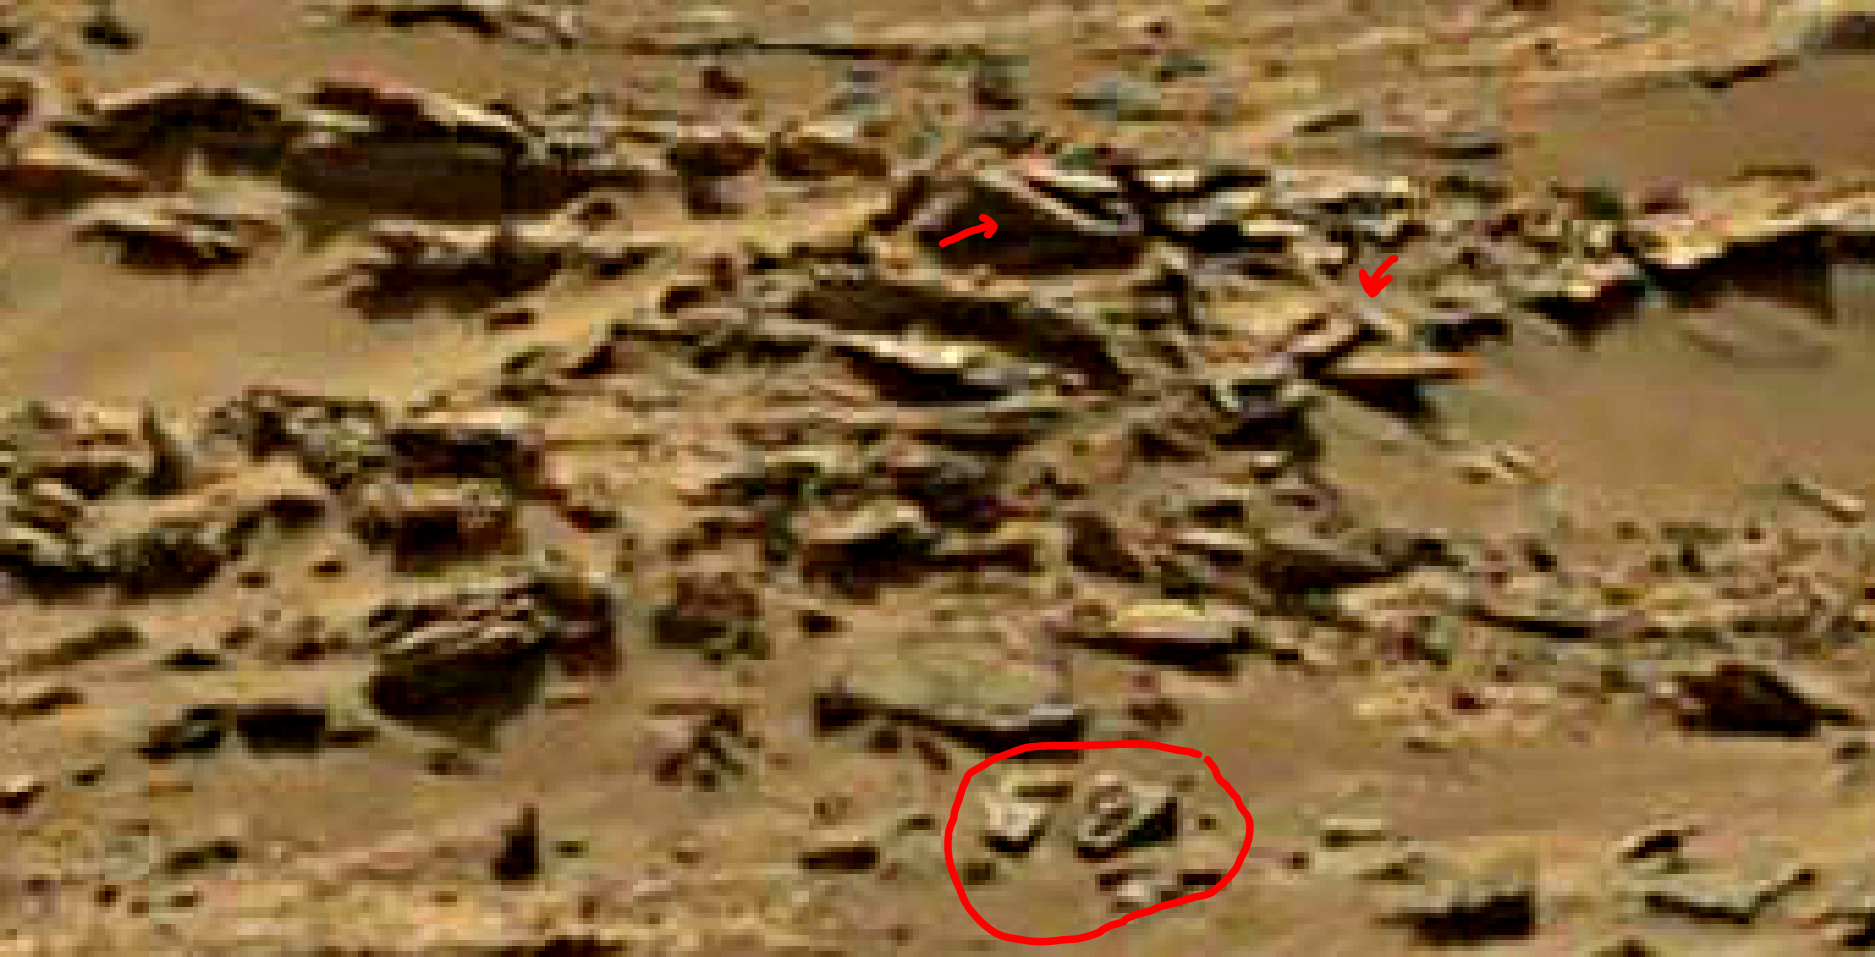 mars sol 1344 anomaly-artifacts 12a was life on mars